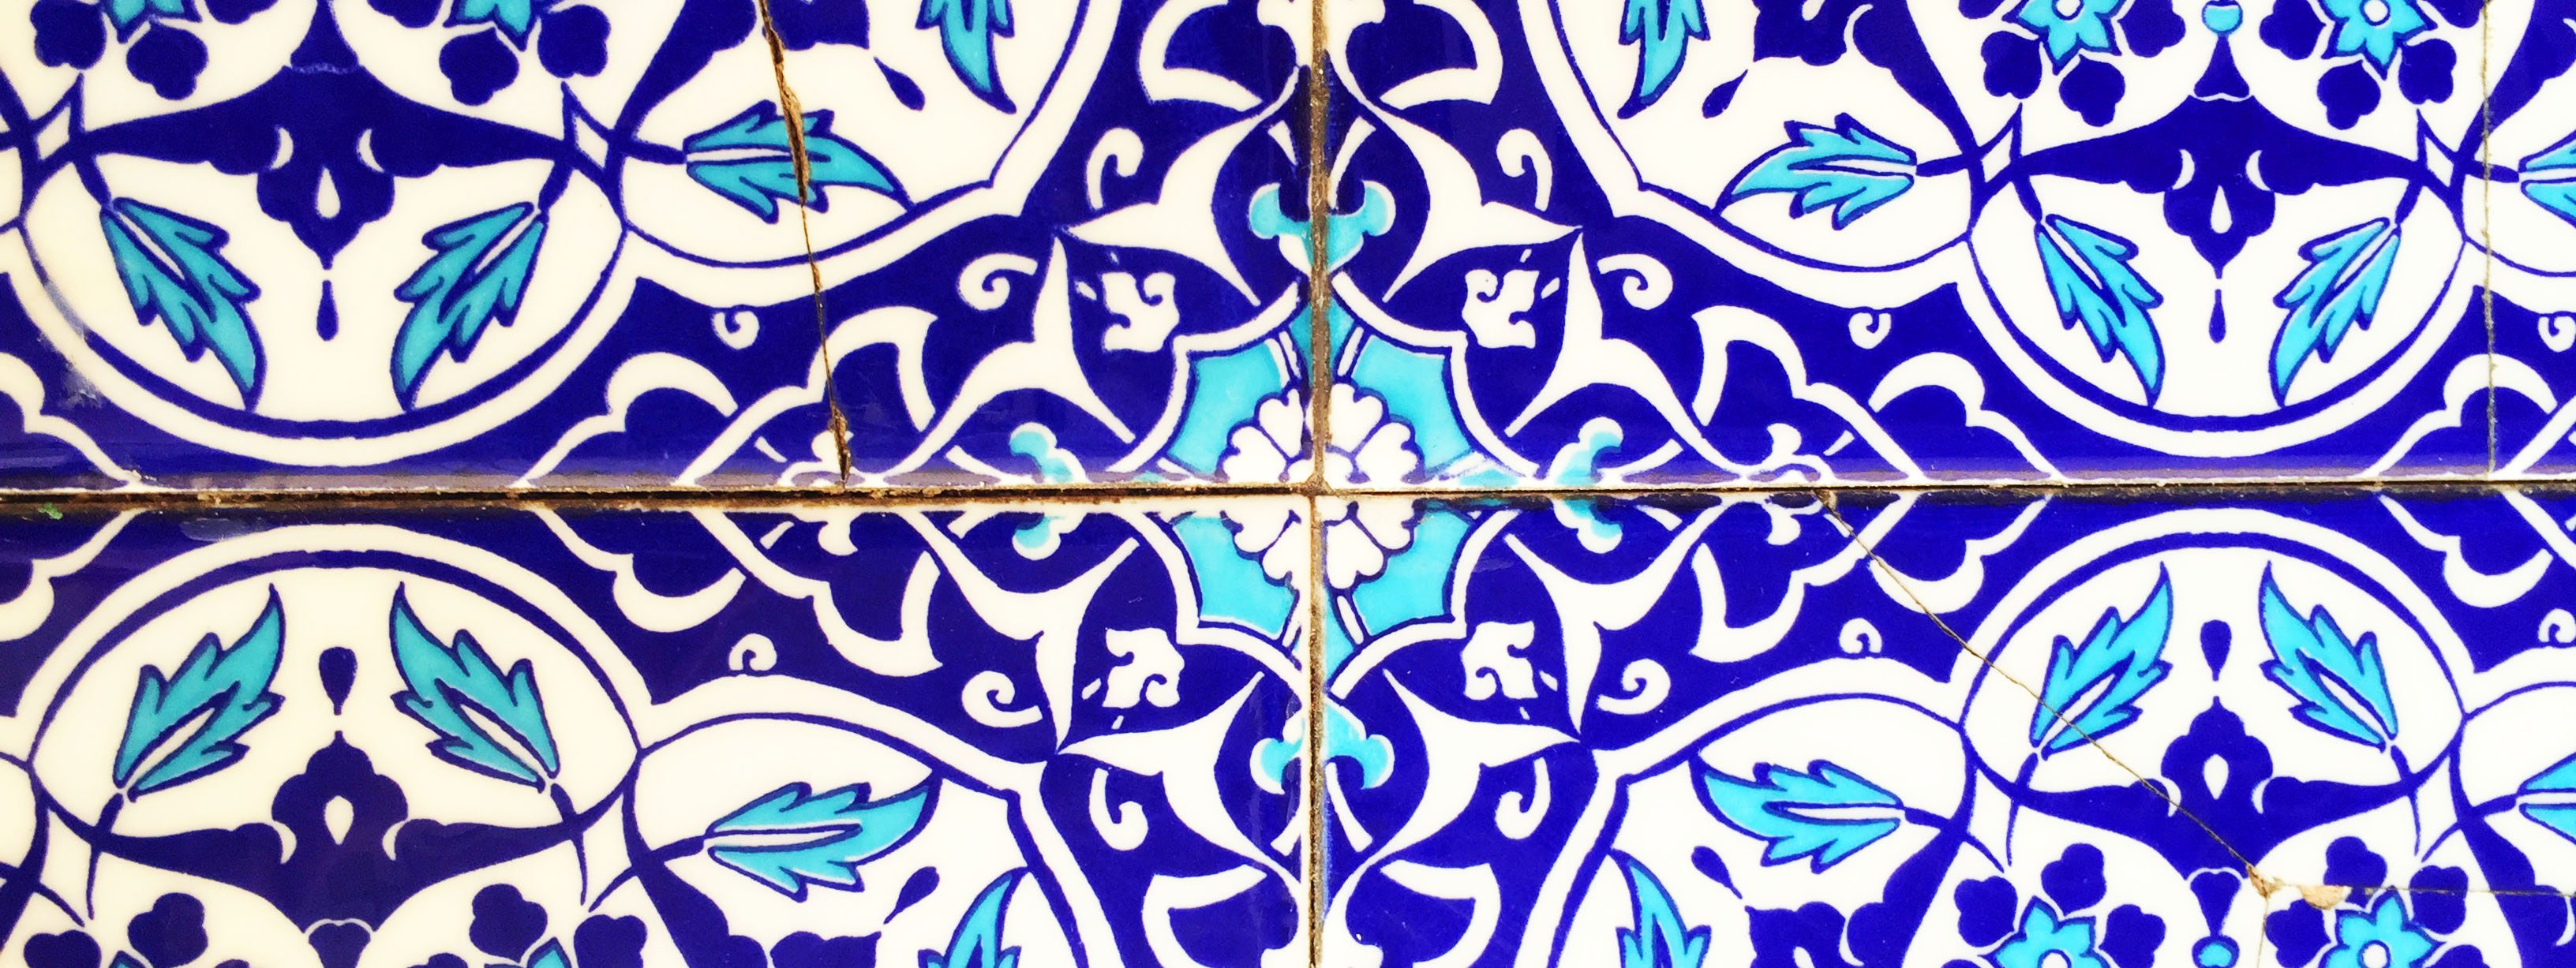 blue tile indonesia blog post top pic